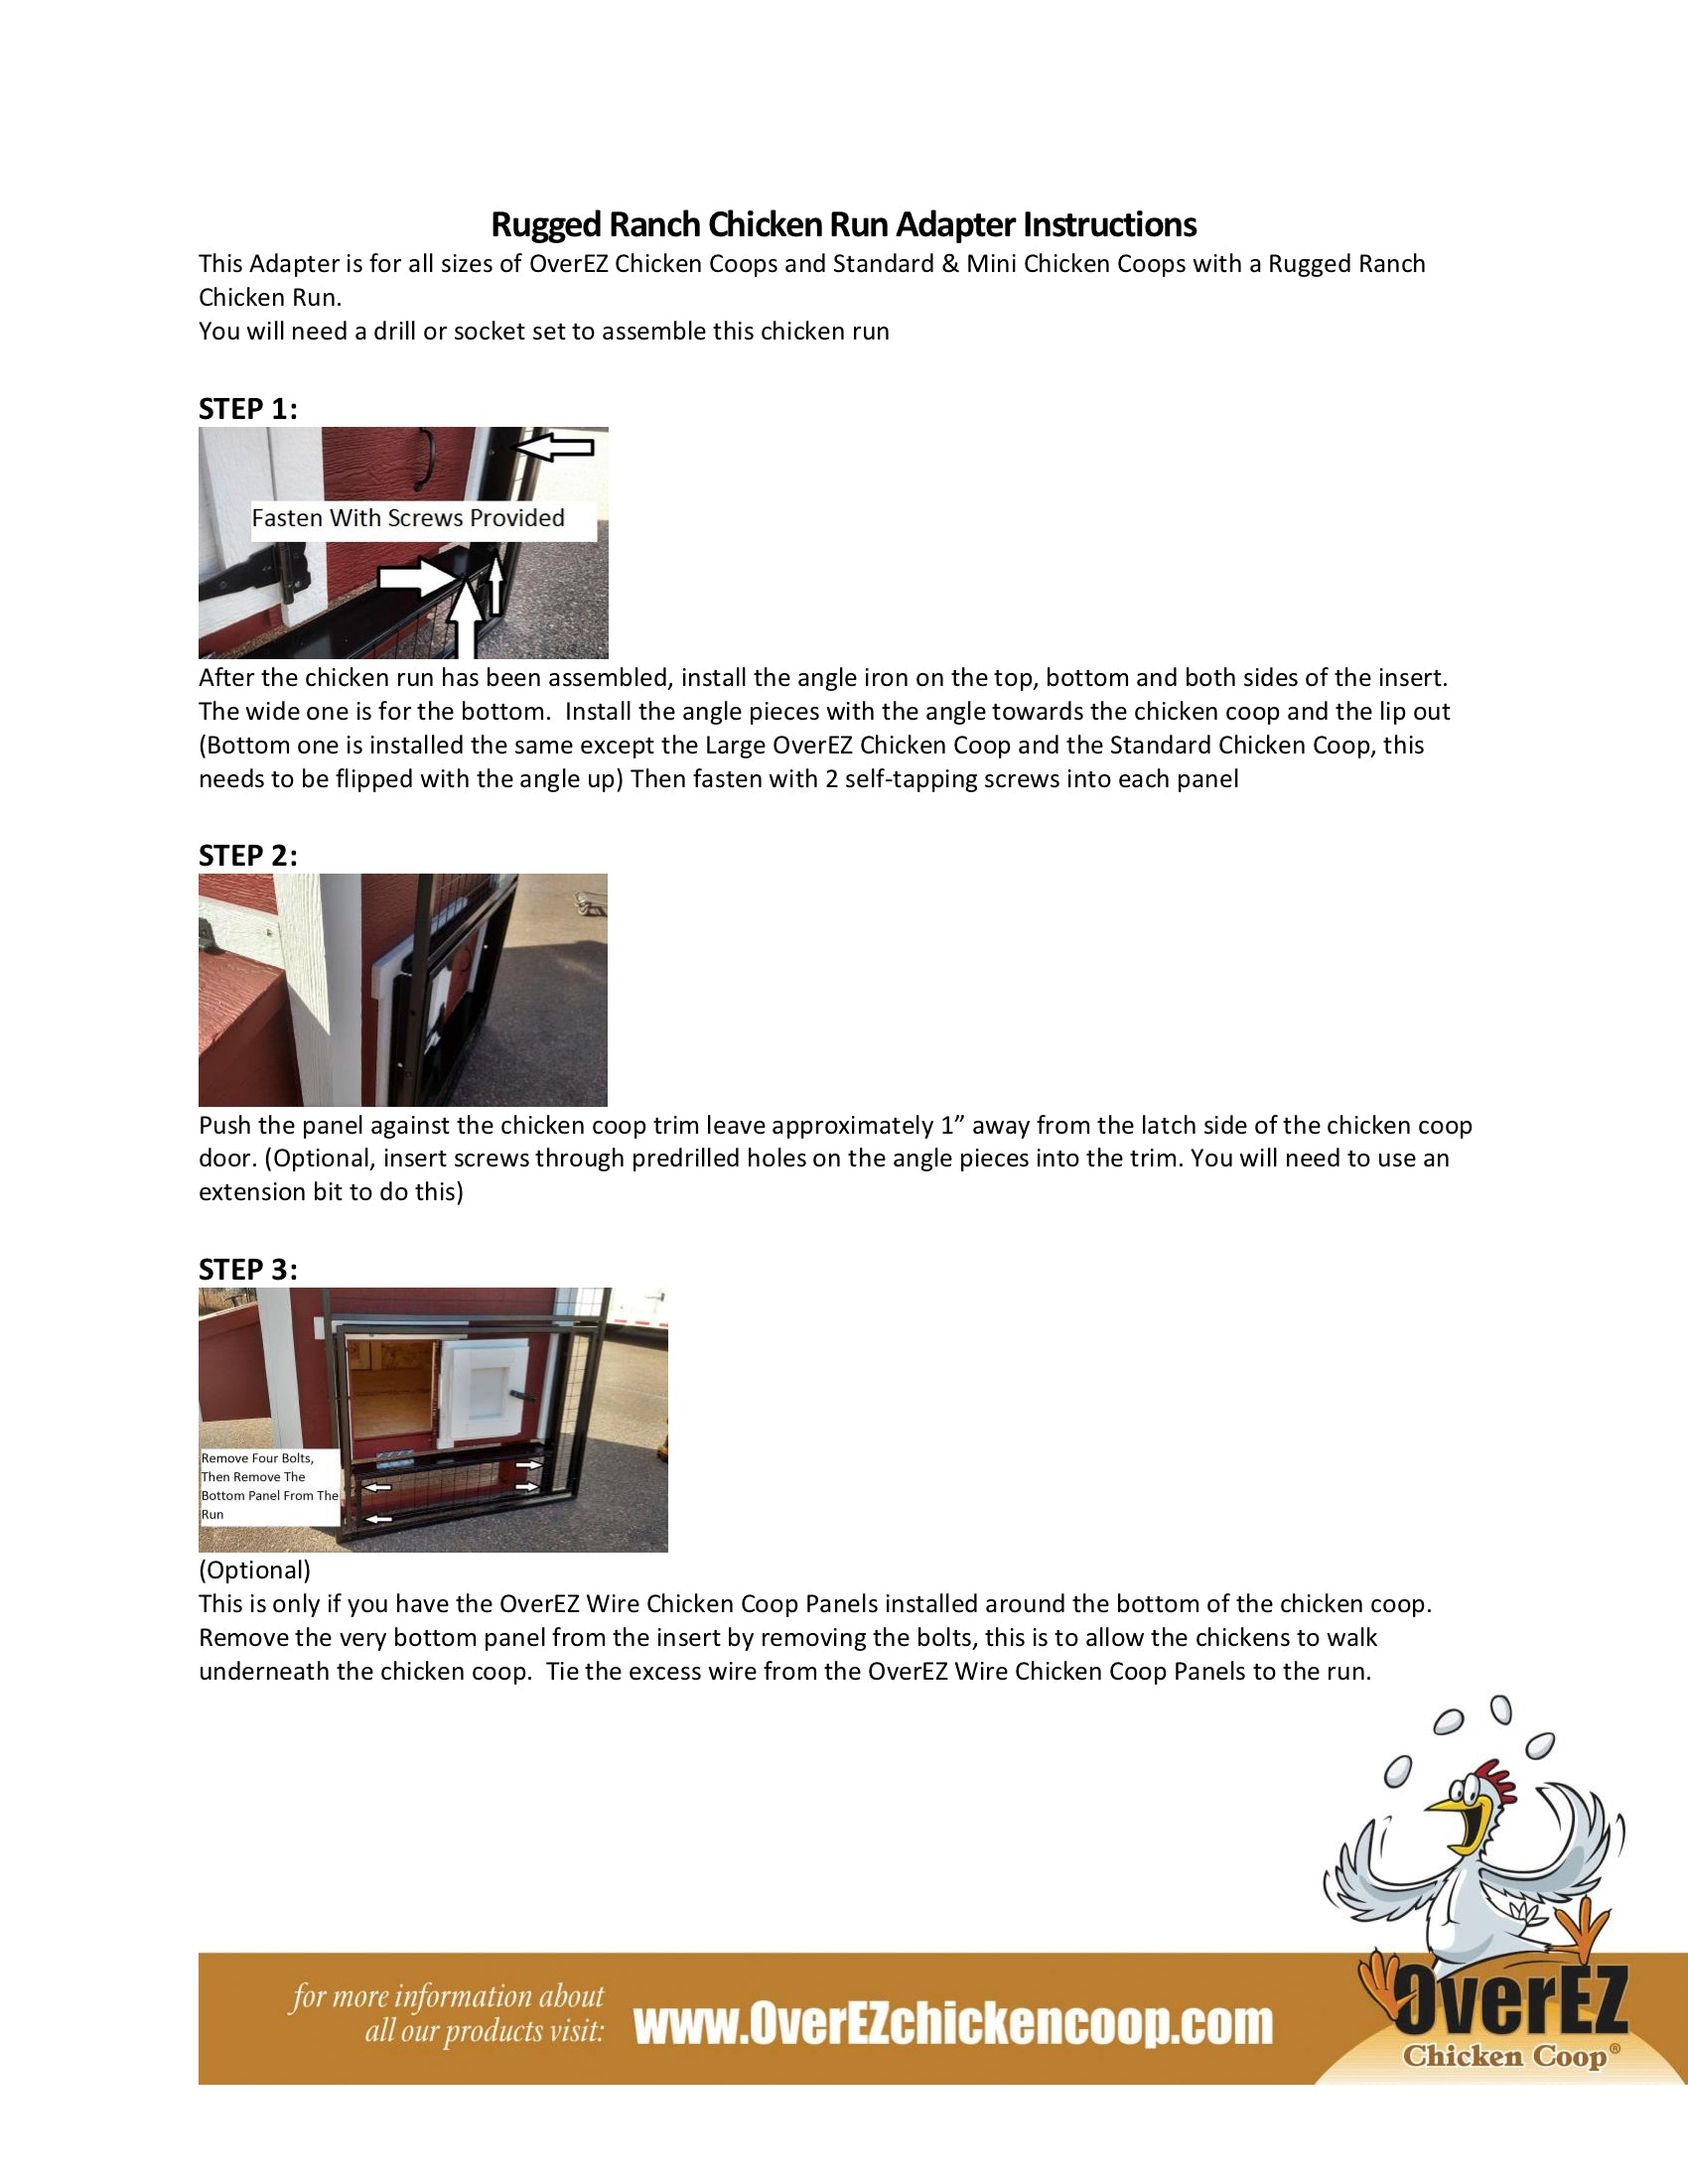 Rugged Ranch Chicken Run 7x16x4 Instructions 5